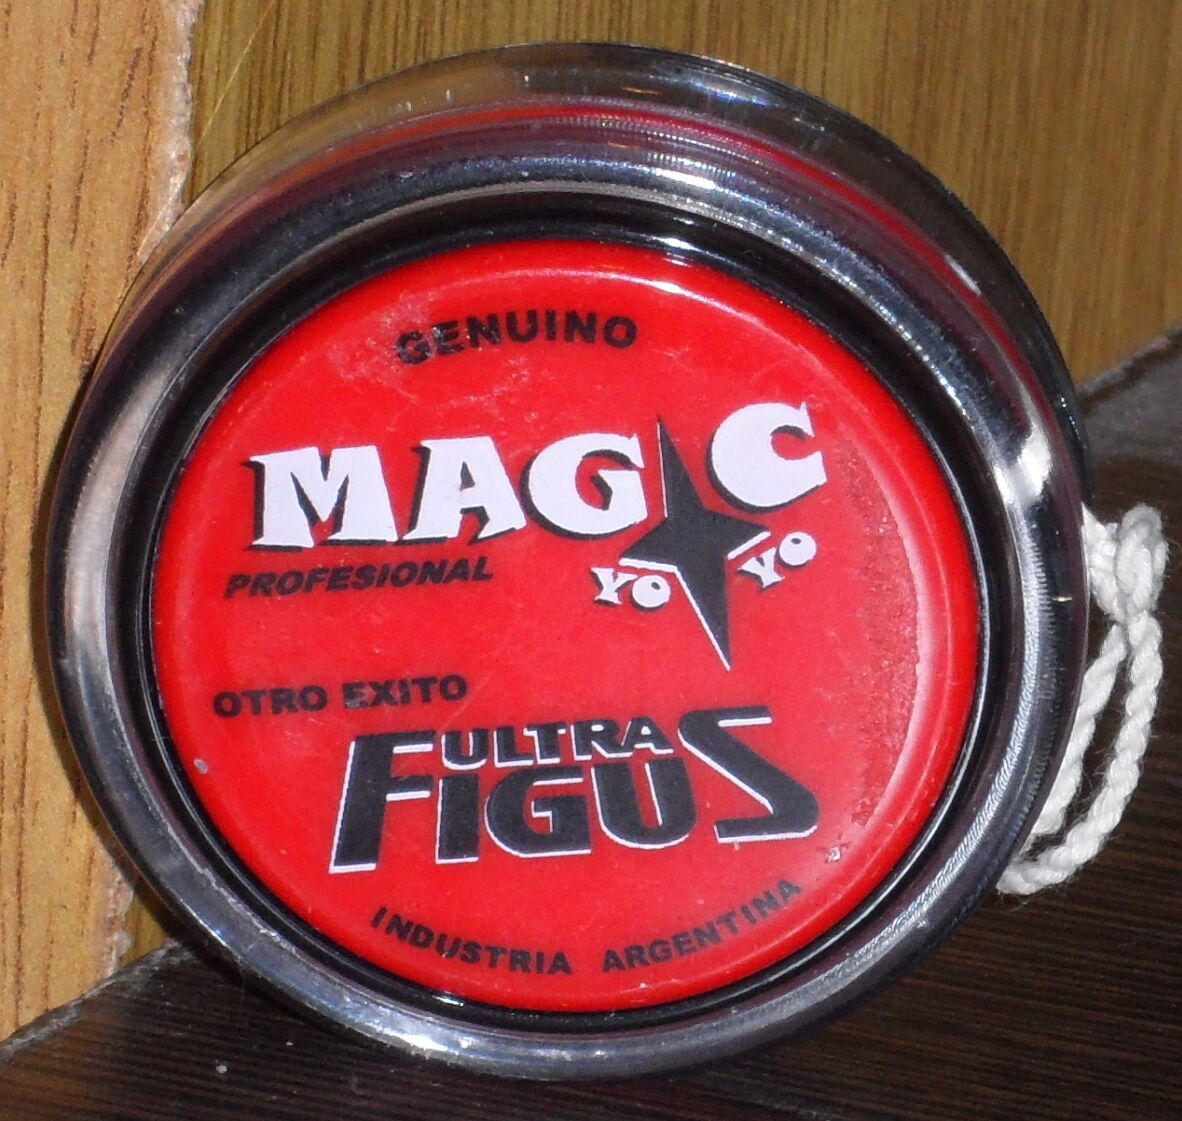 LOT 4 YOYO MAGIC PROFESIONAL silverINA YEAR's 90 s SOME FABRIC RUSSELL